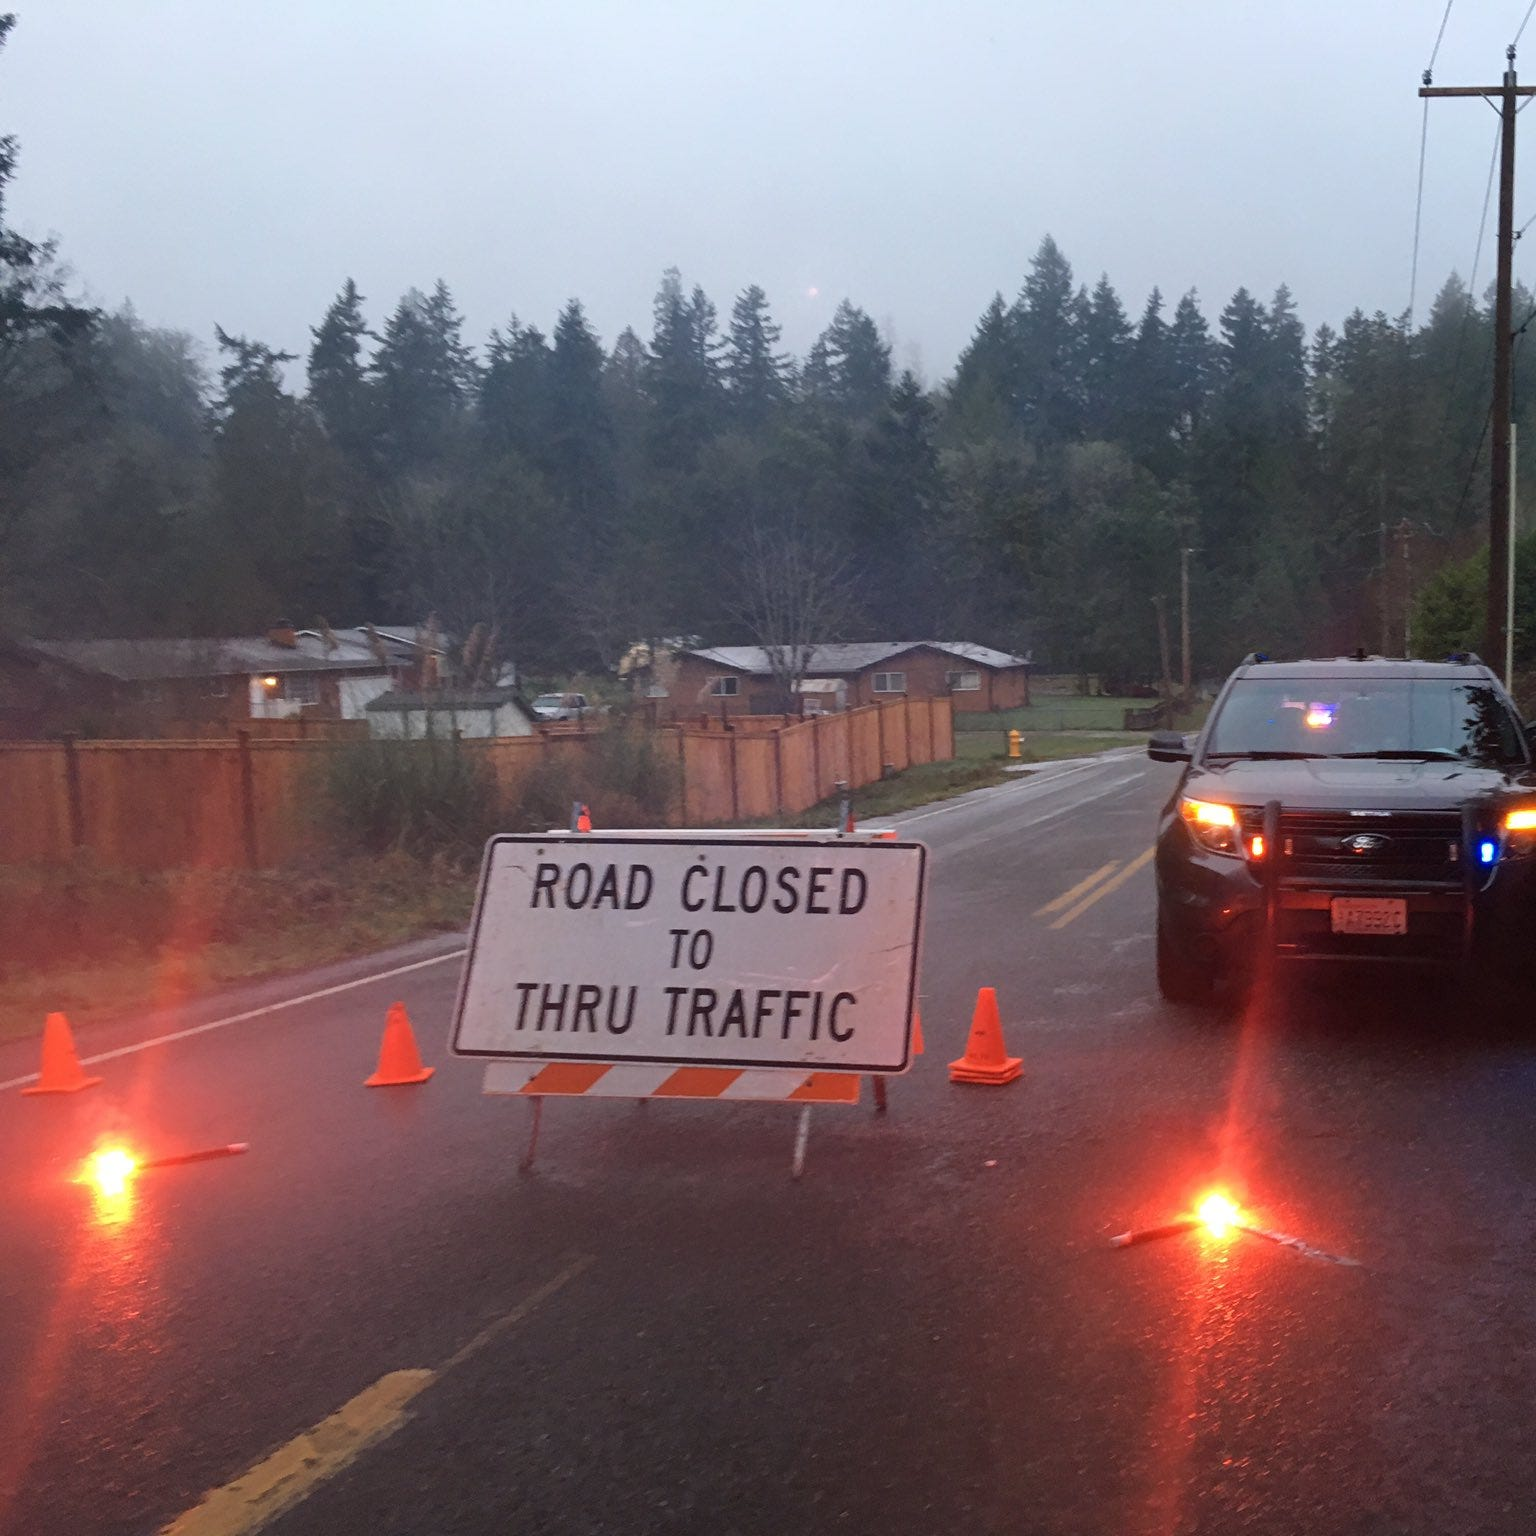 One man killed in car crash on Illahee Road in Kitsap